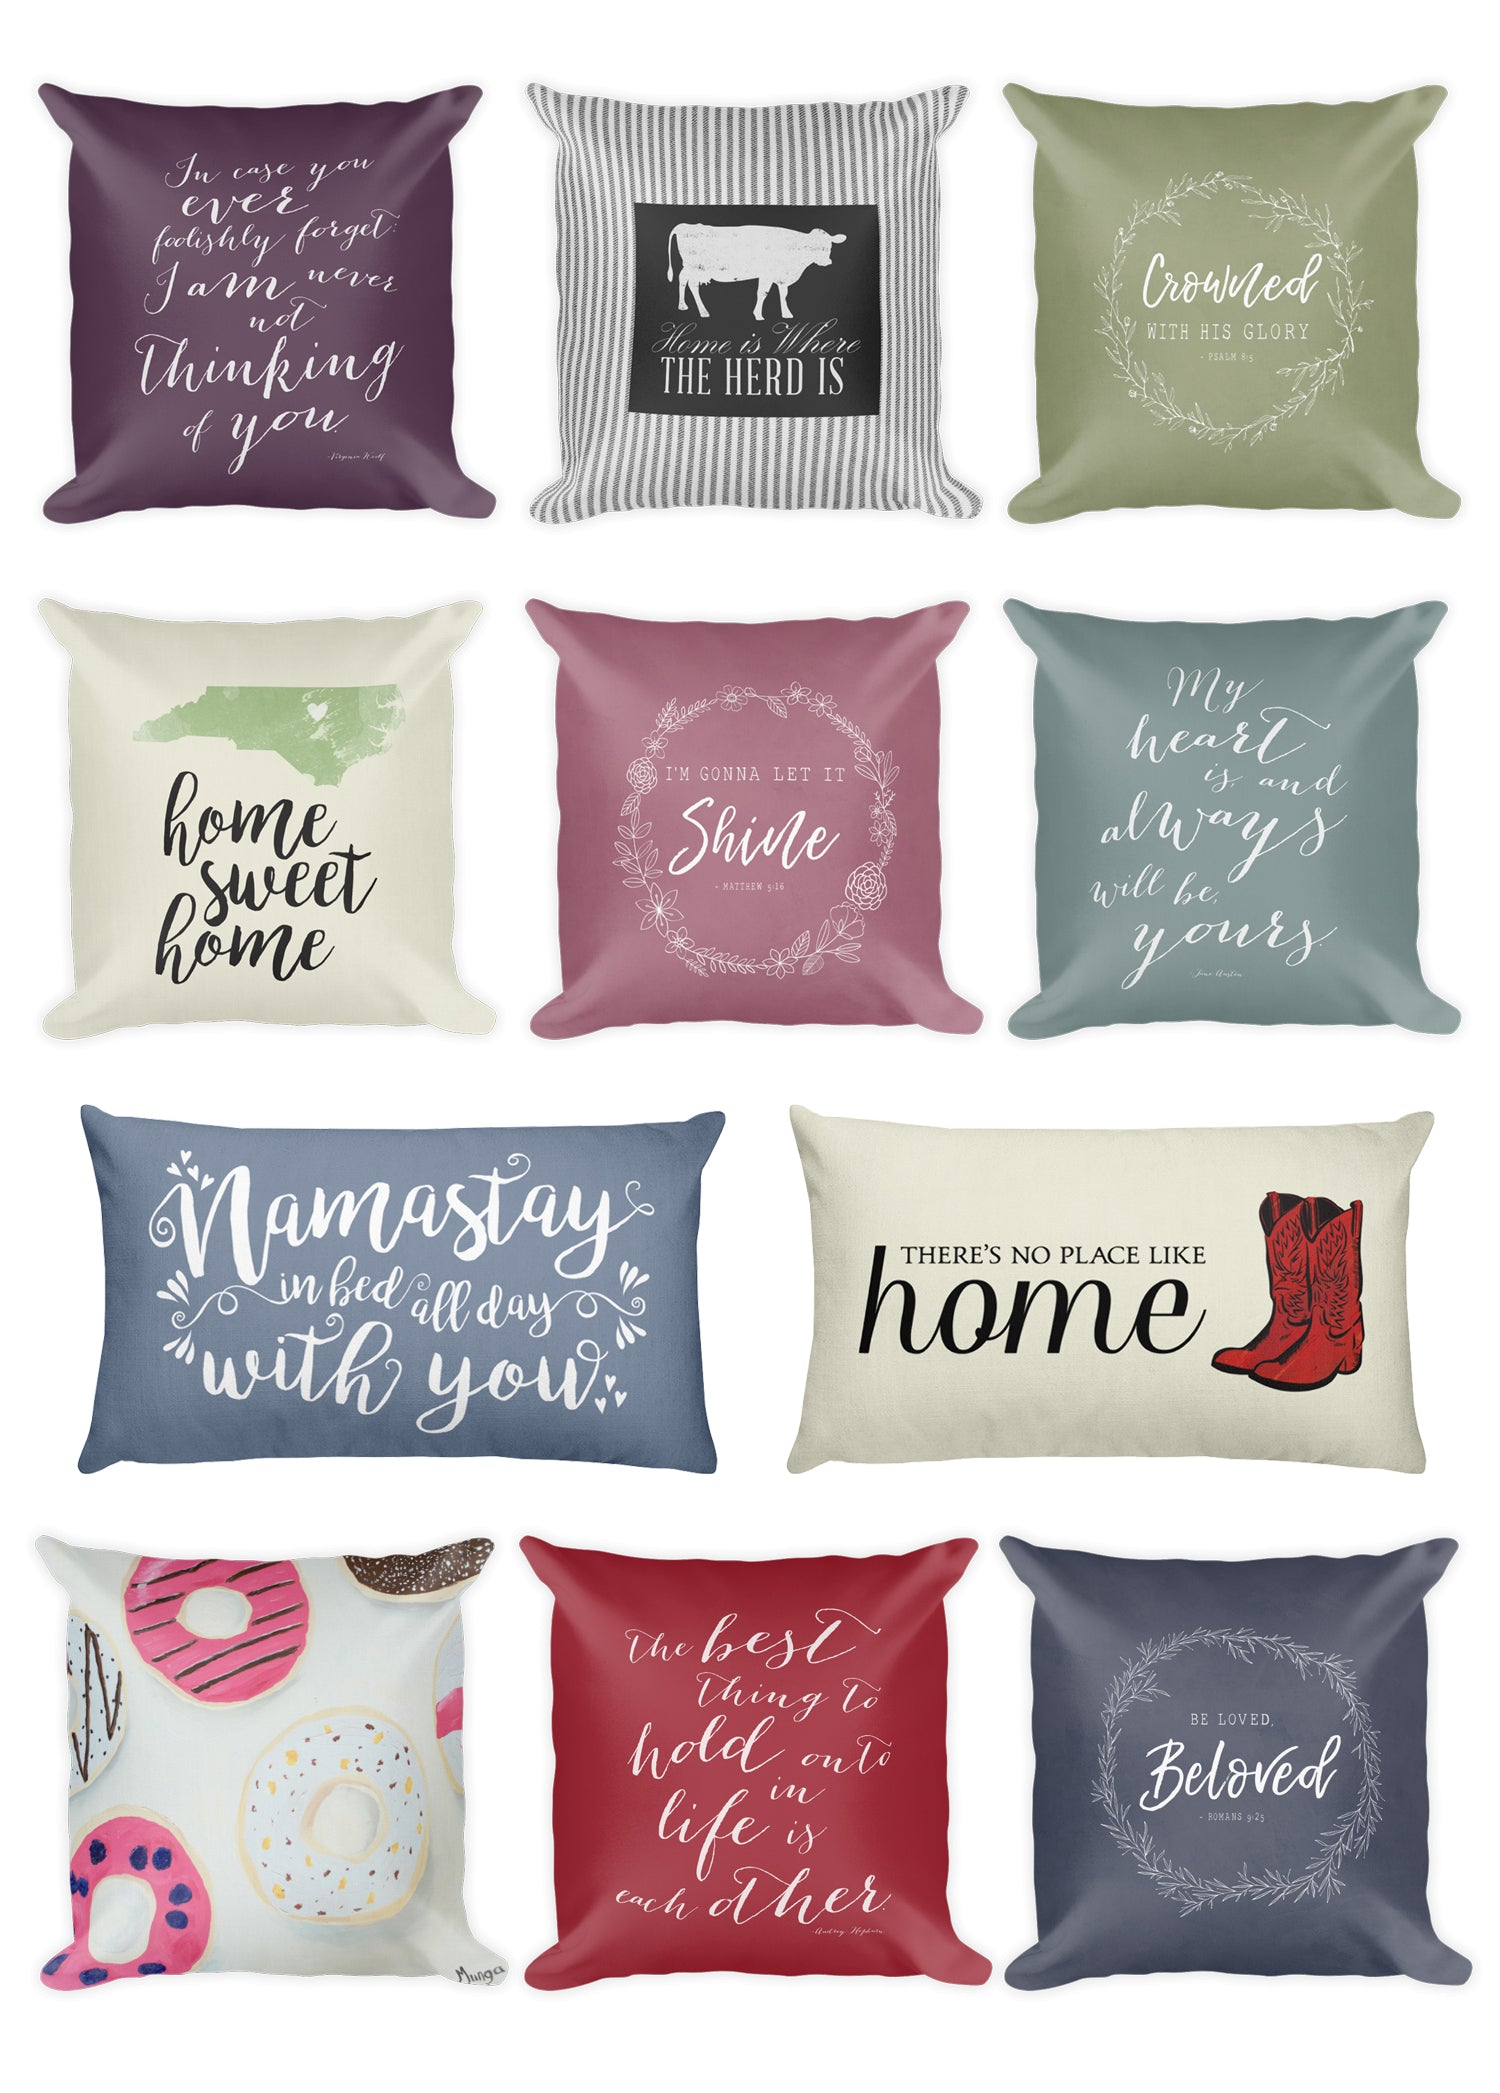 Favorite Quote Throw Pillows by Munga Vision | Fun Pillow Accents with your Favorite Sayings